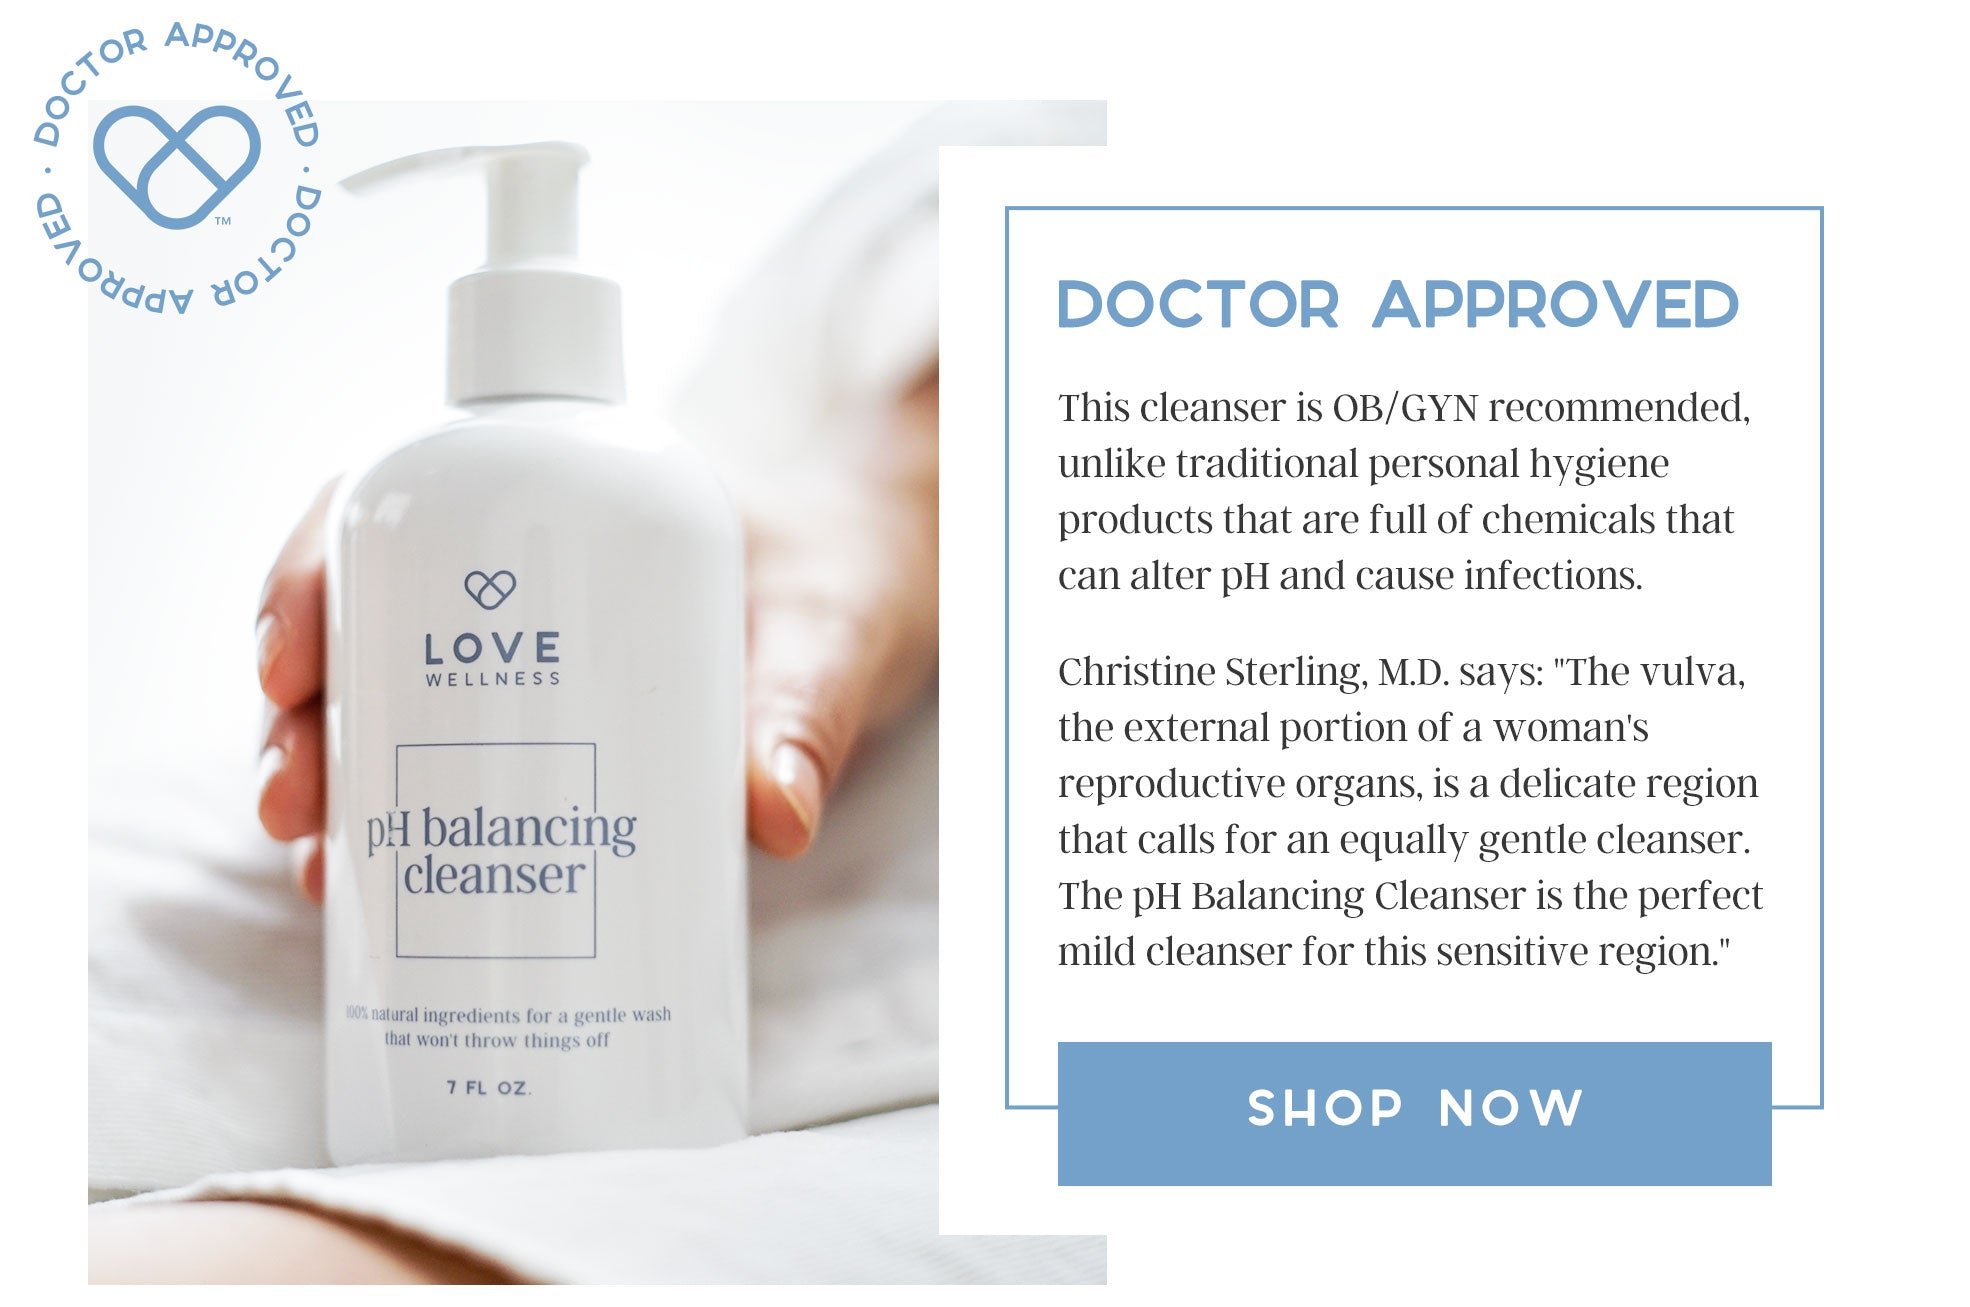 Doctor Approved: This cleanser is OB/GYN recommended, unlike traditional personal hygiene products that are full of chemicals that can alter pH and cause infections.